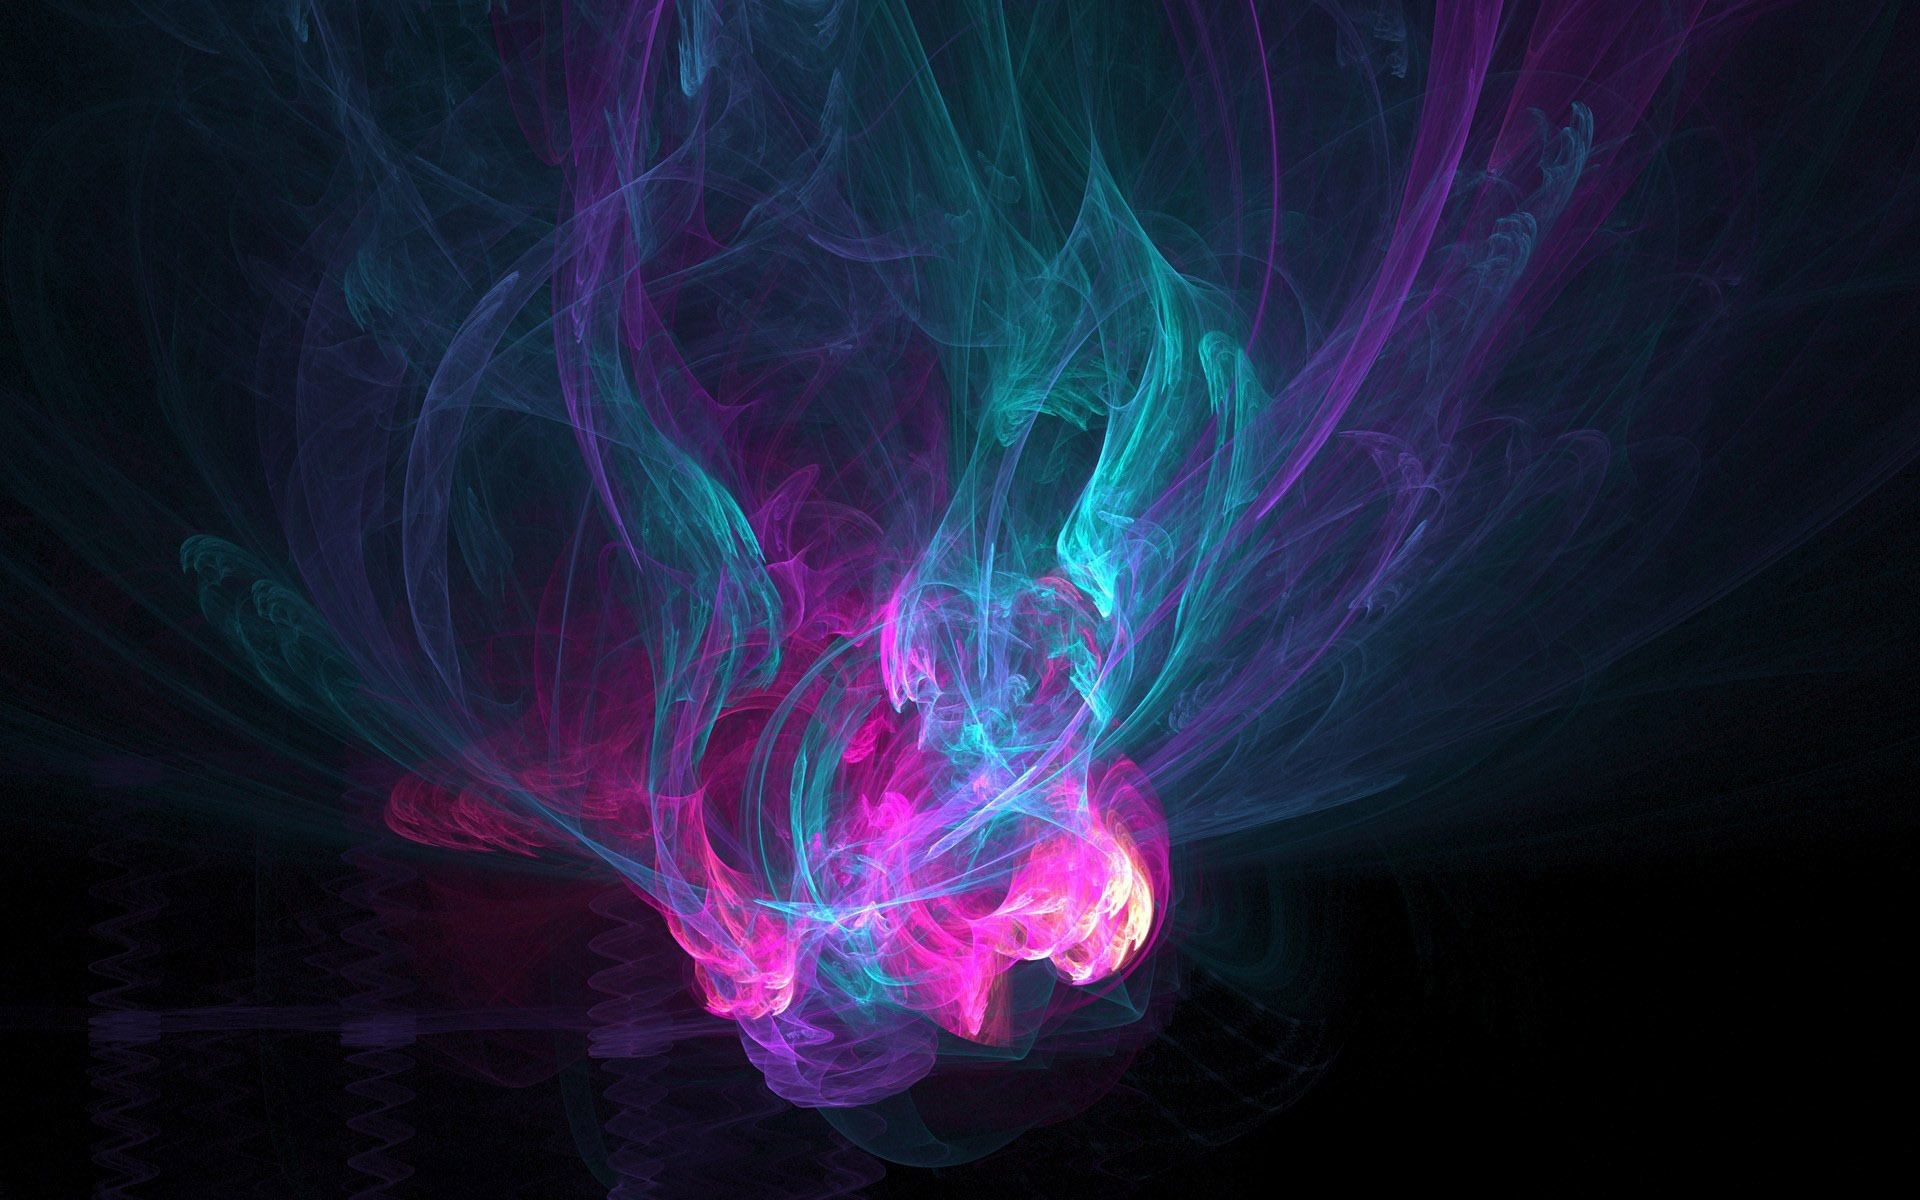 Hd Abstract Wallpaper Neon Smoke 71 Images